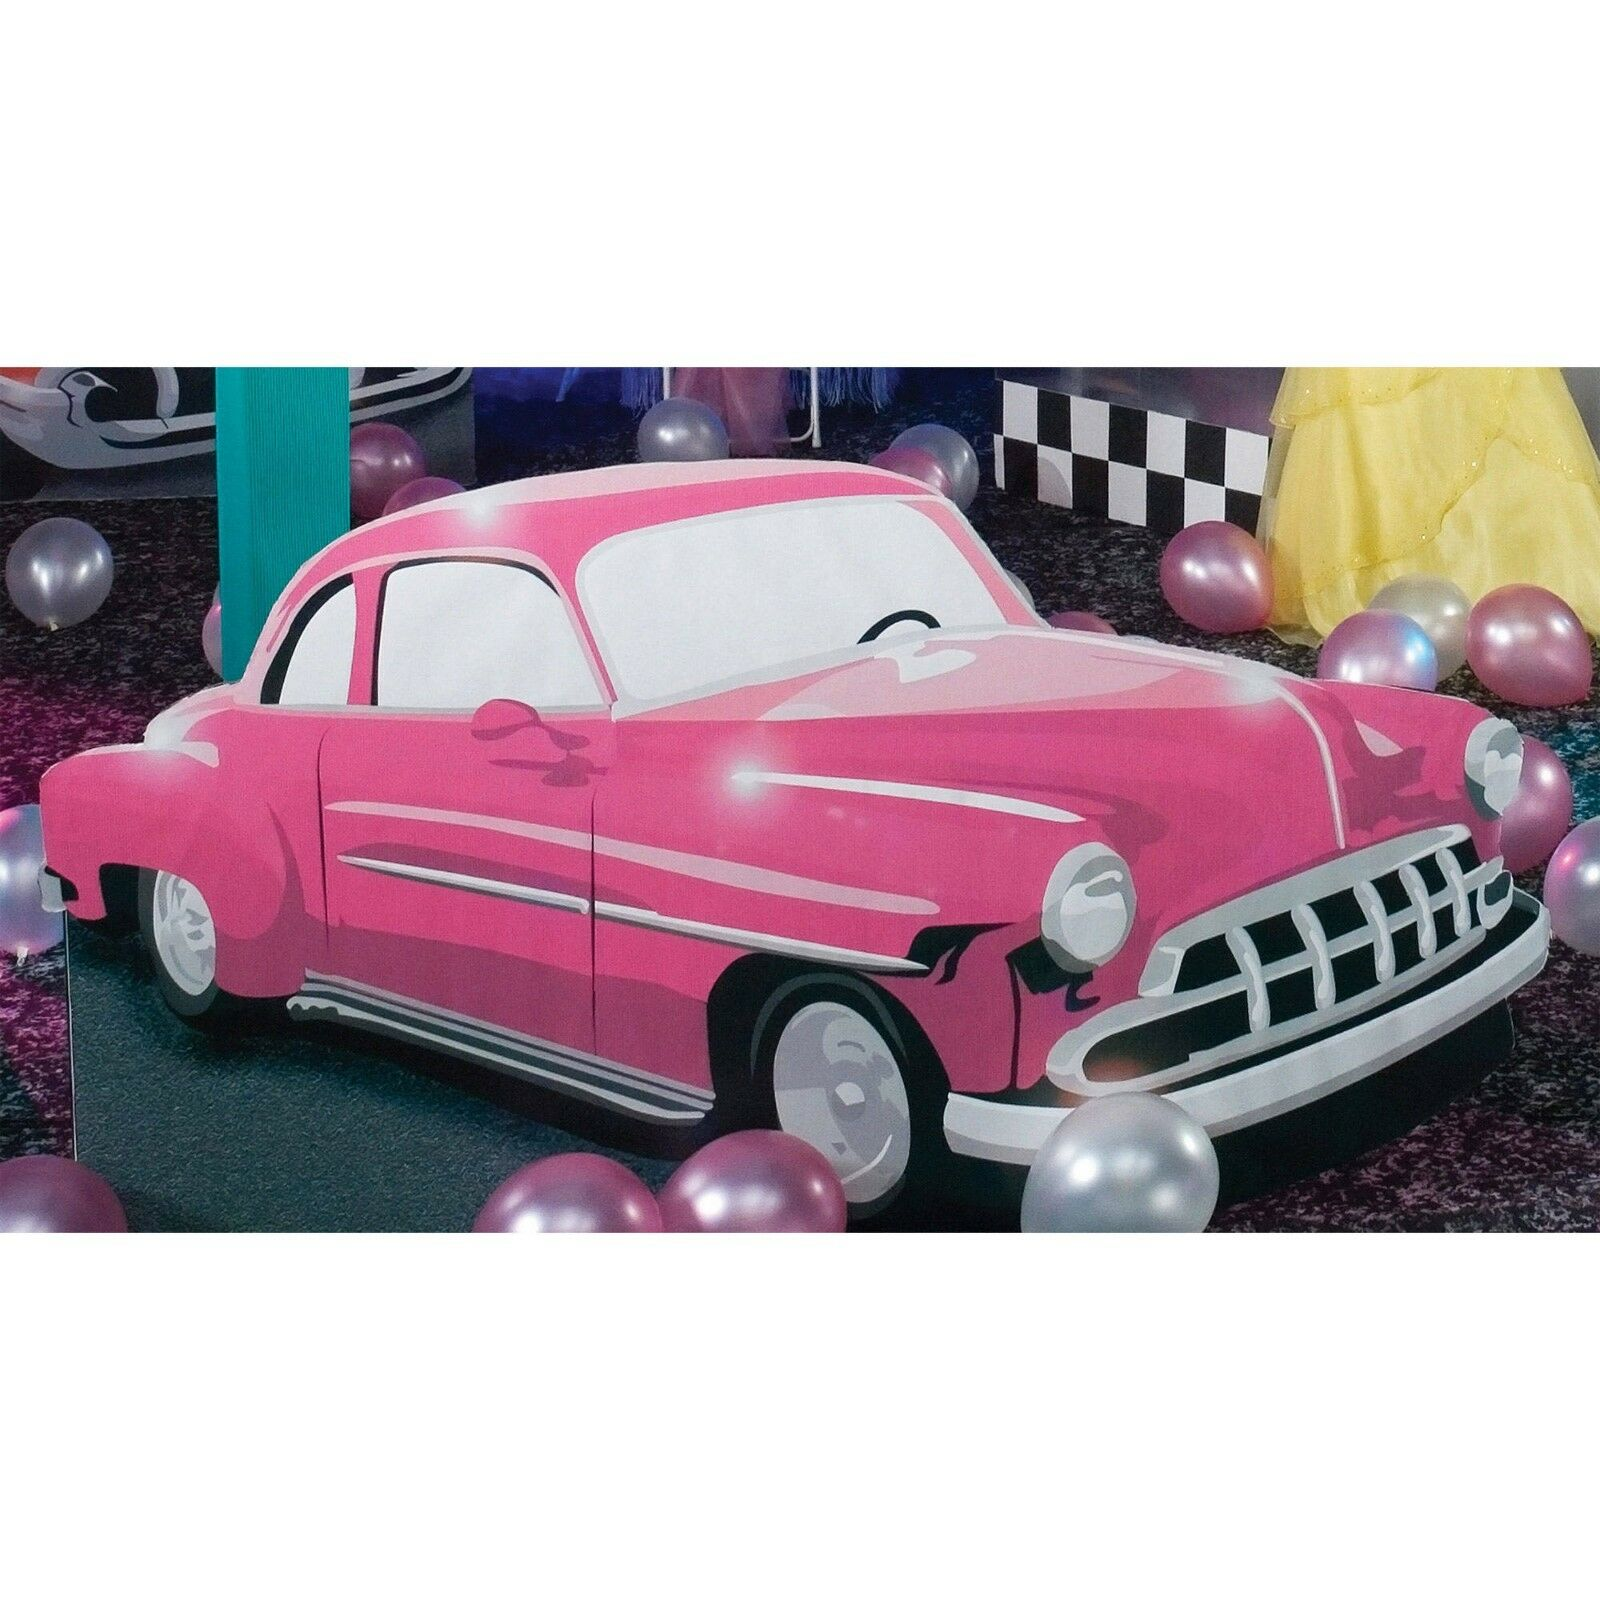 1950's 1950's 1950's CAR Rosa Coupe Standee fifties An iconic car 1950's  Photo Prop cardboard ed666f